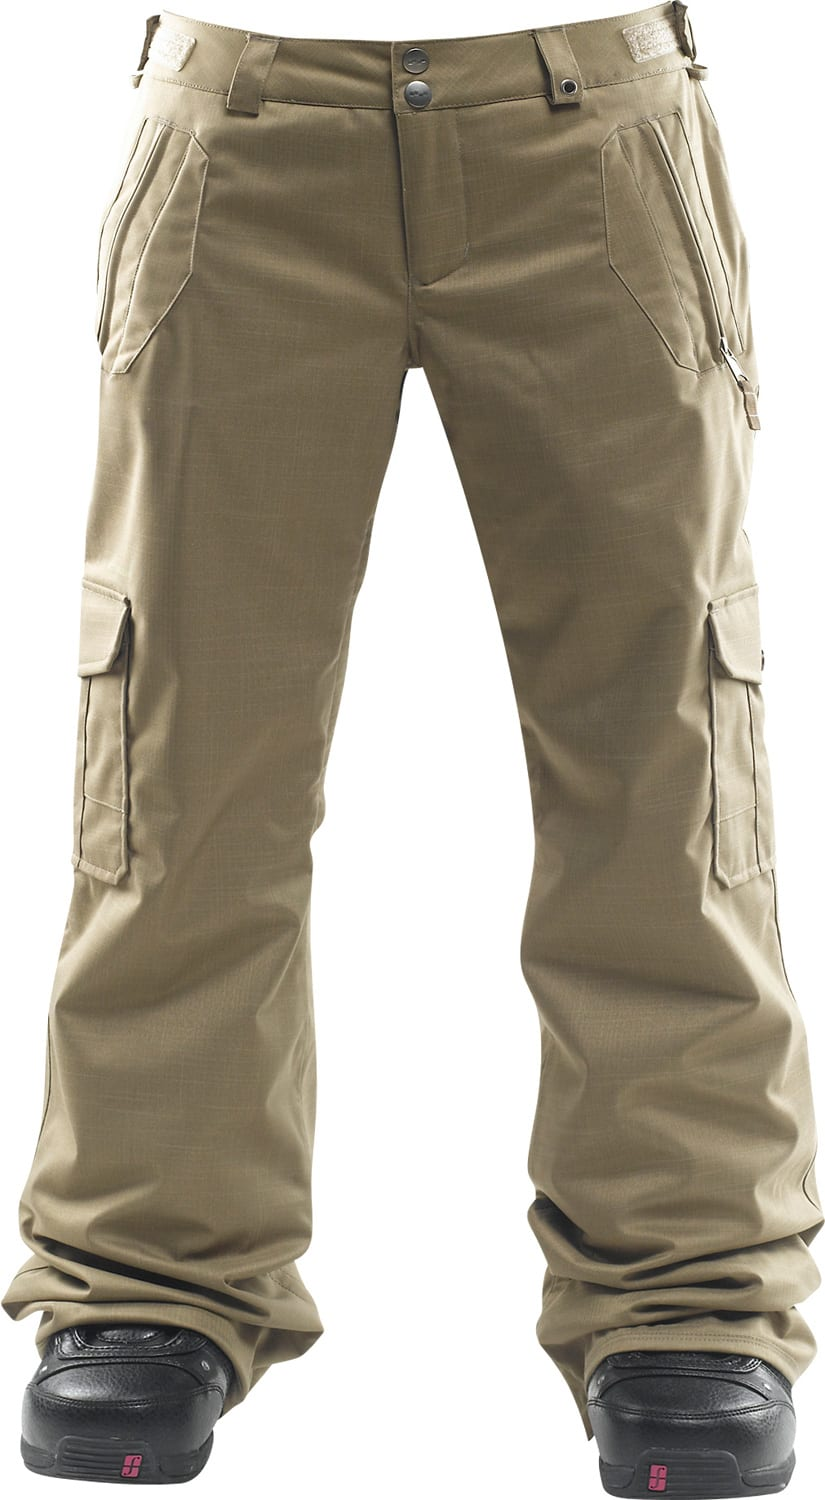 On Sale Foursquare Range Snowboard Pants - Womens up to 65